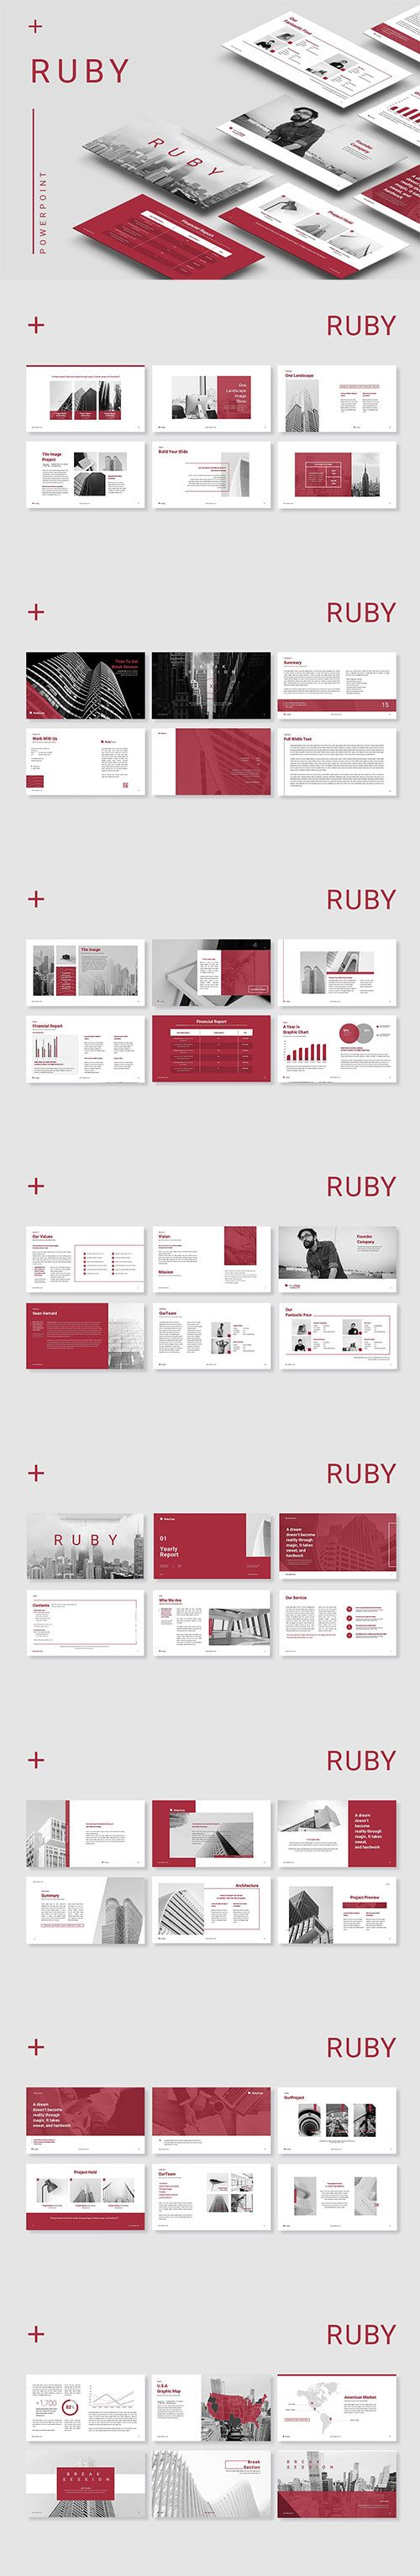 Ruby Powerpoint | Pinterest | Powerpoint presentation templates ...